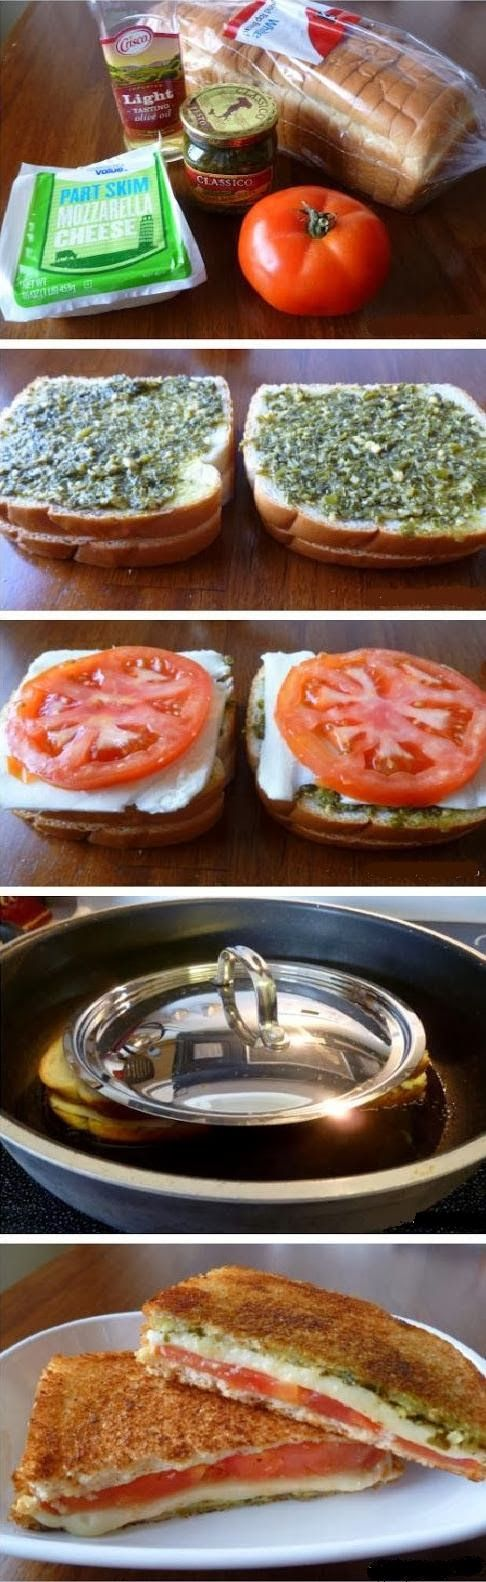 Food & Drink: Grilled cheese tomato and pesto sandwich